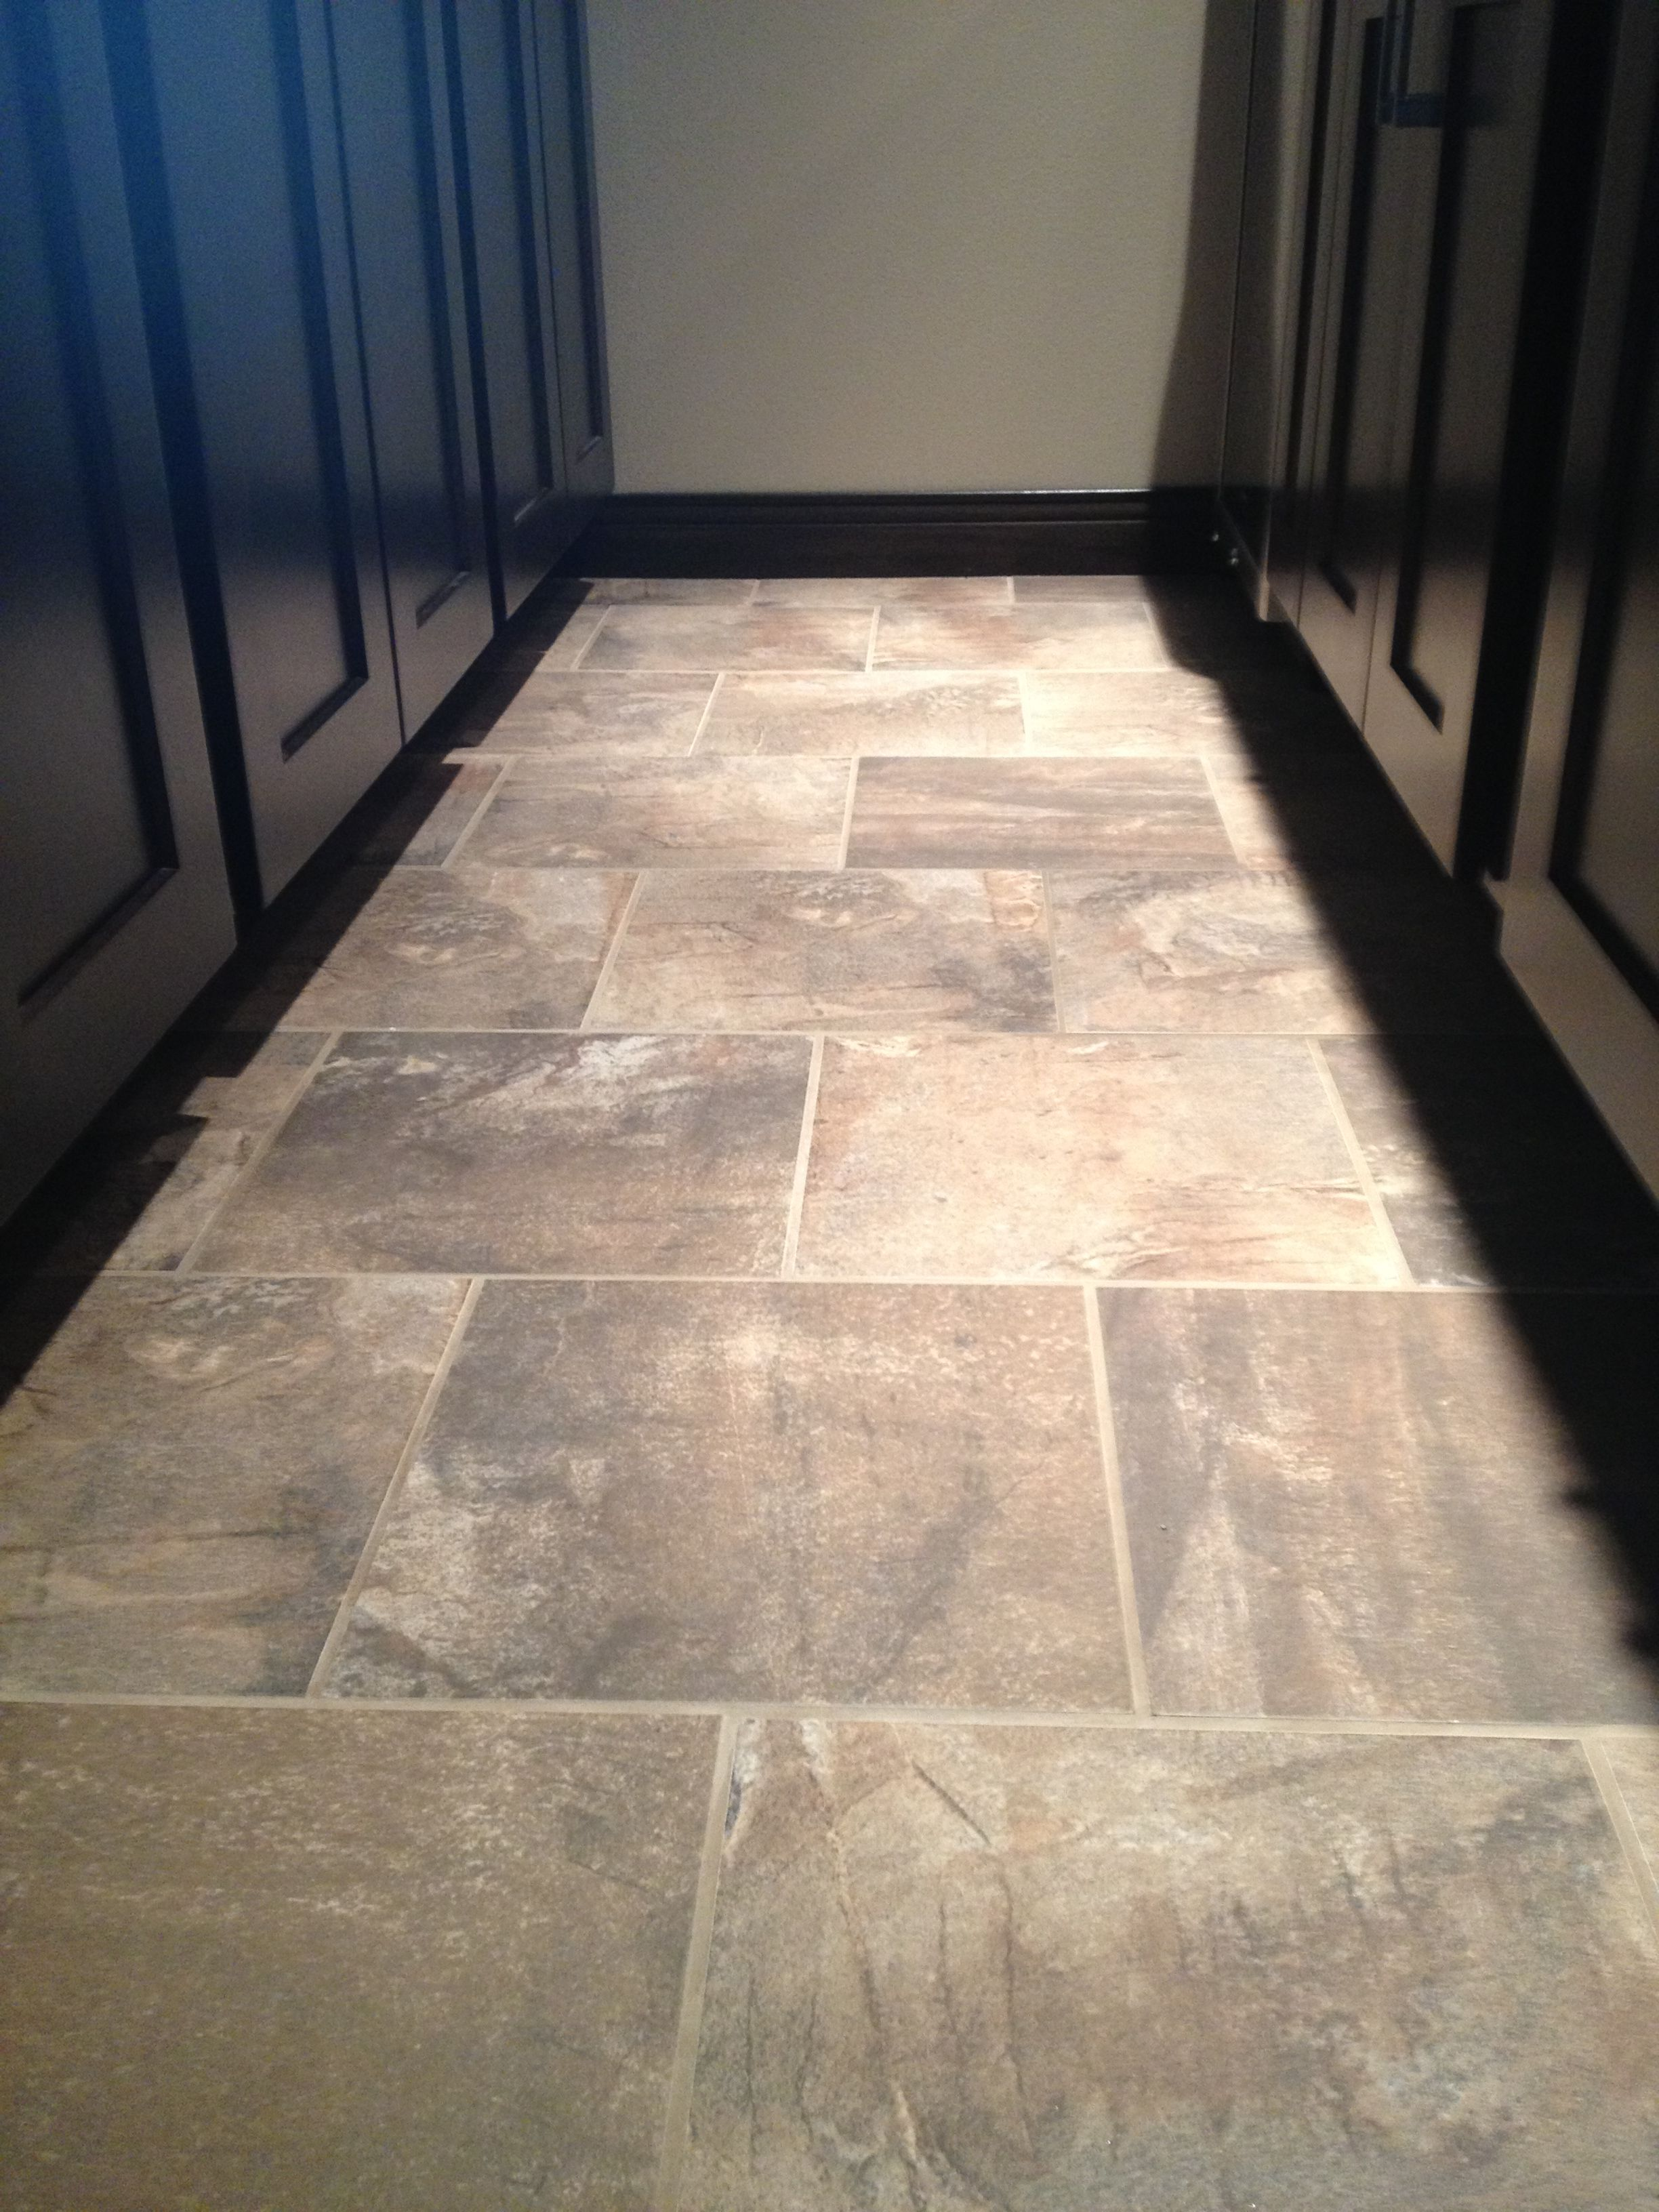 Porcelain Floor Tiles Gerard Homes 2013 Parade 13x13 Porcelain Tile Flooring In